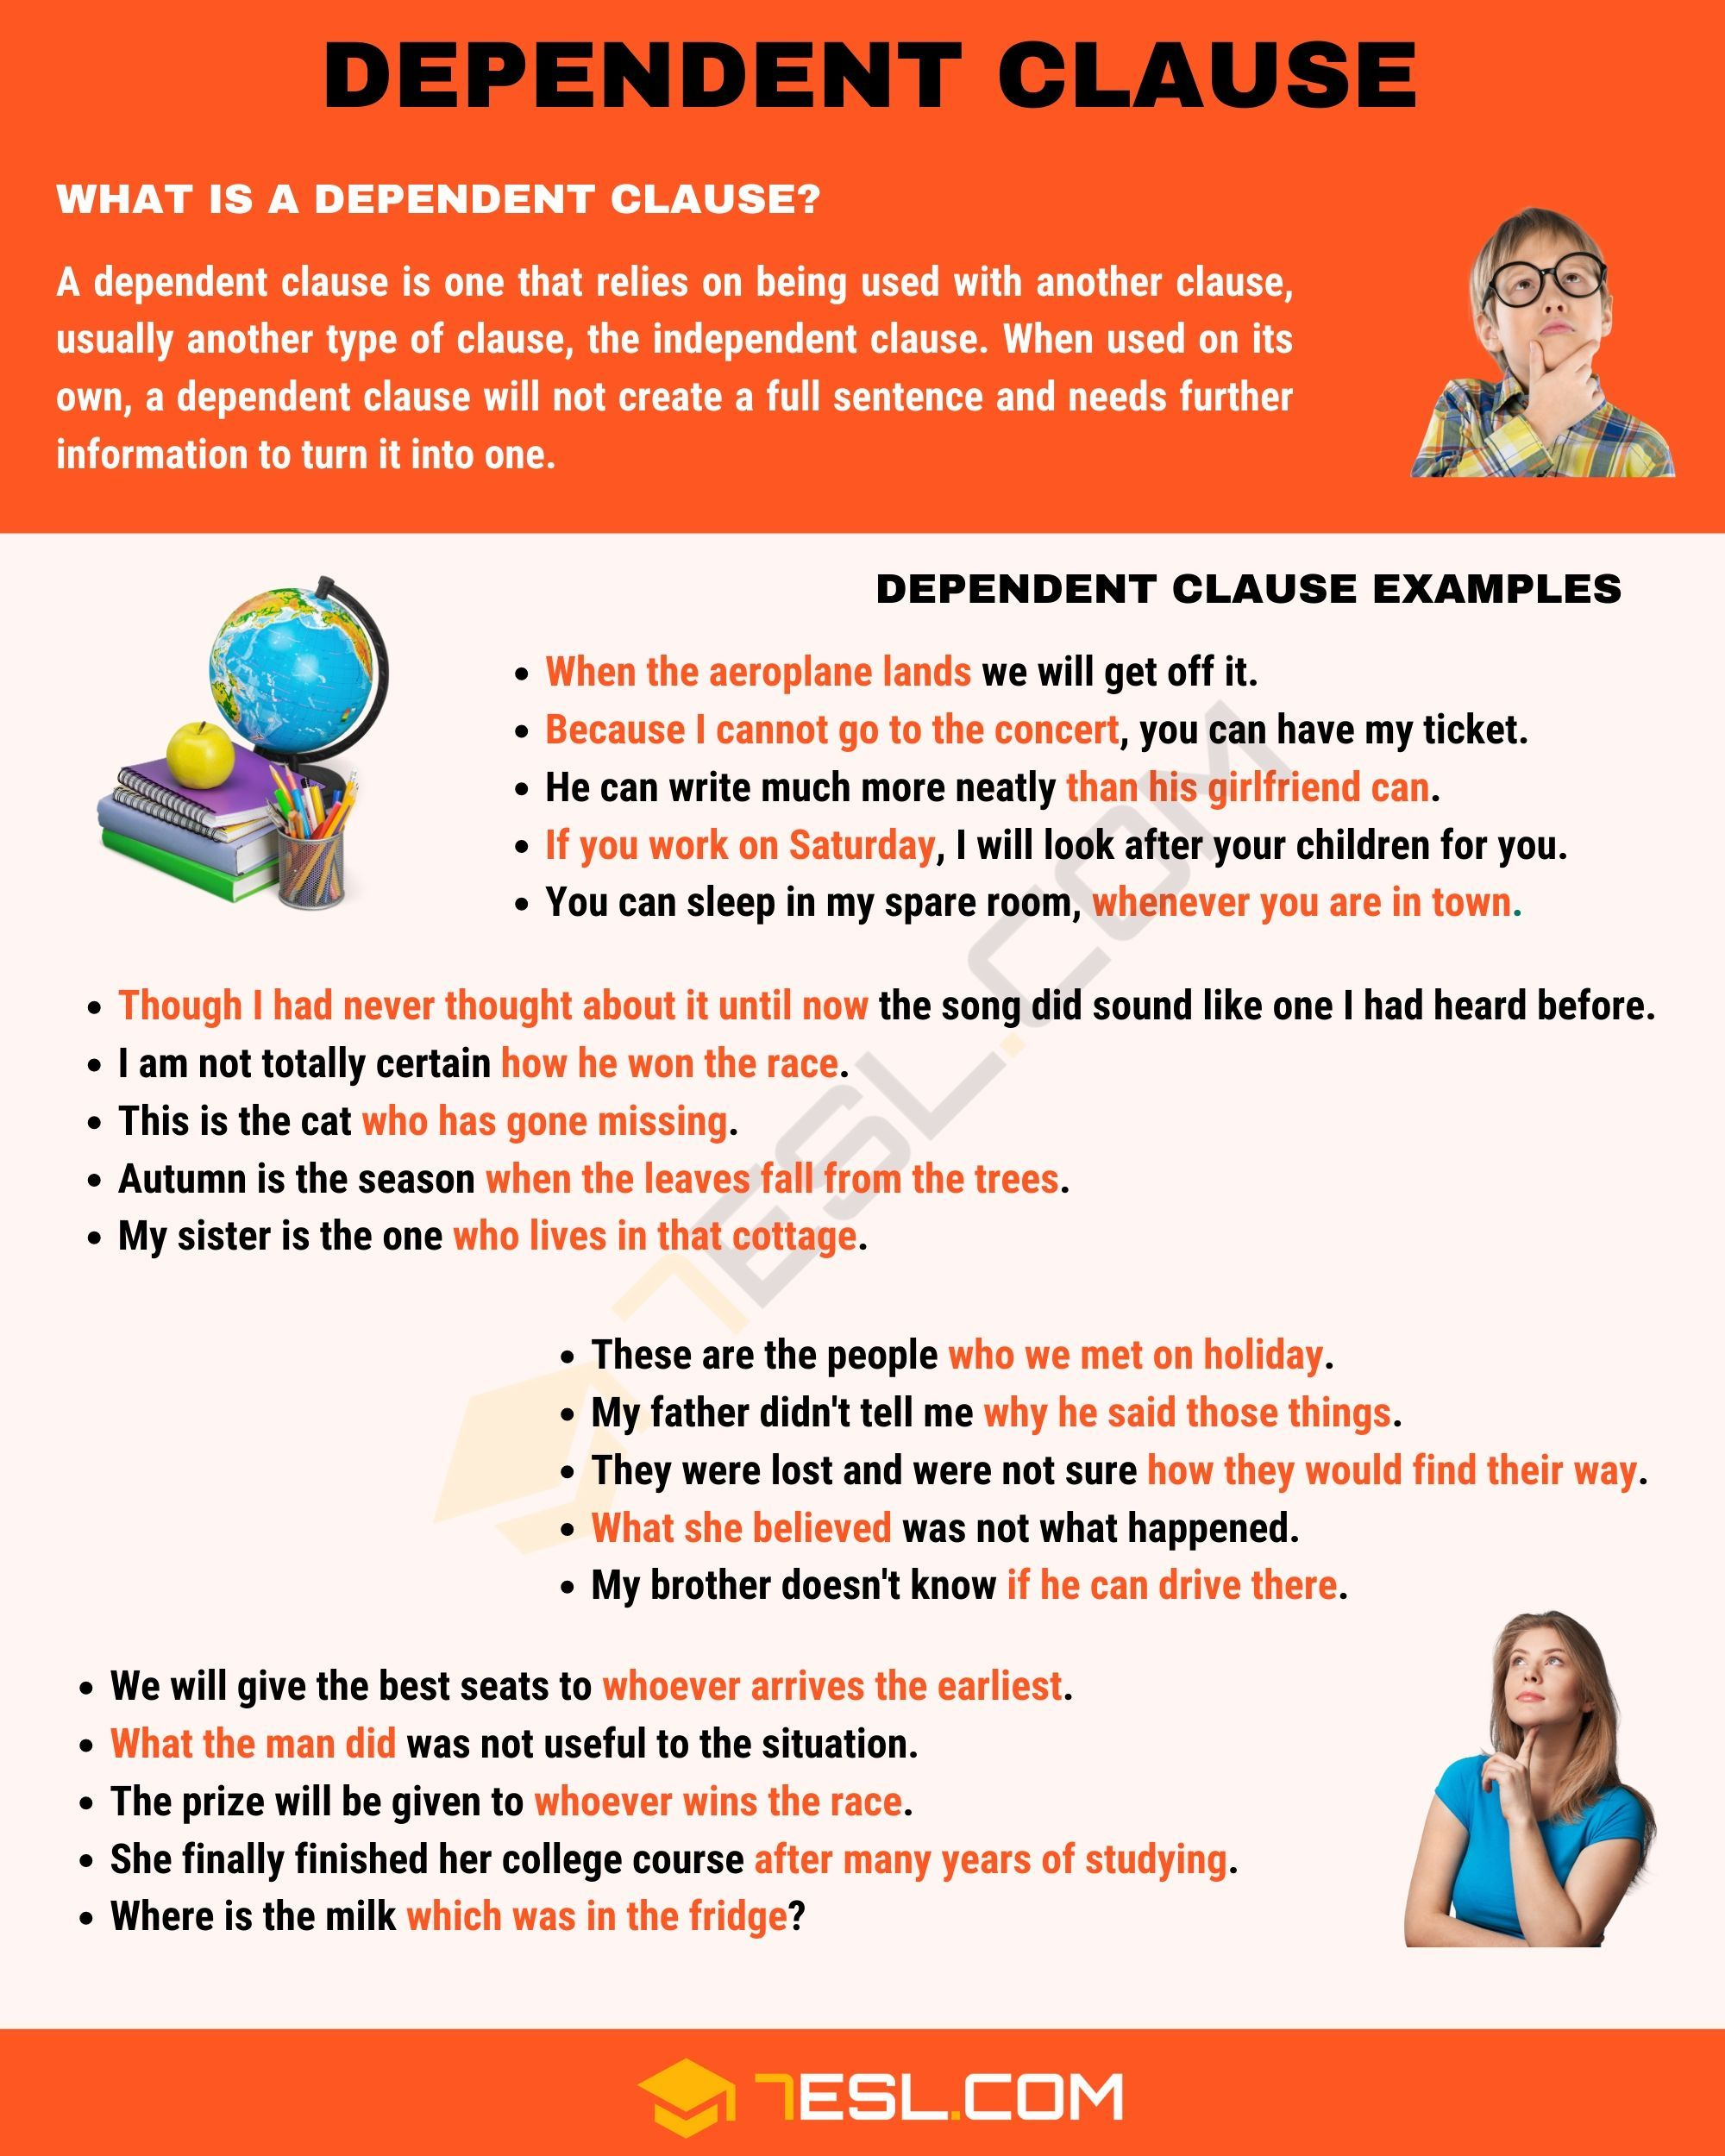 Dependent Clause Definition And Examples Of Dependent